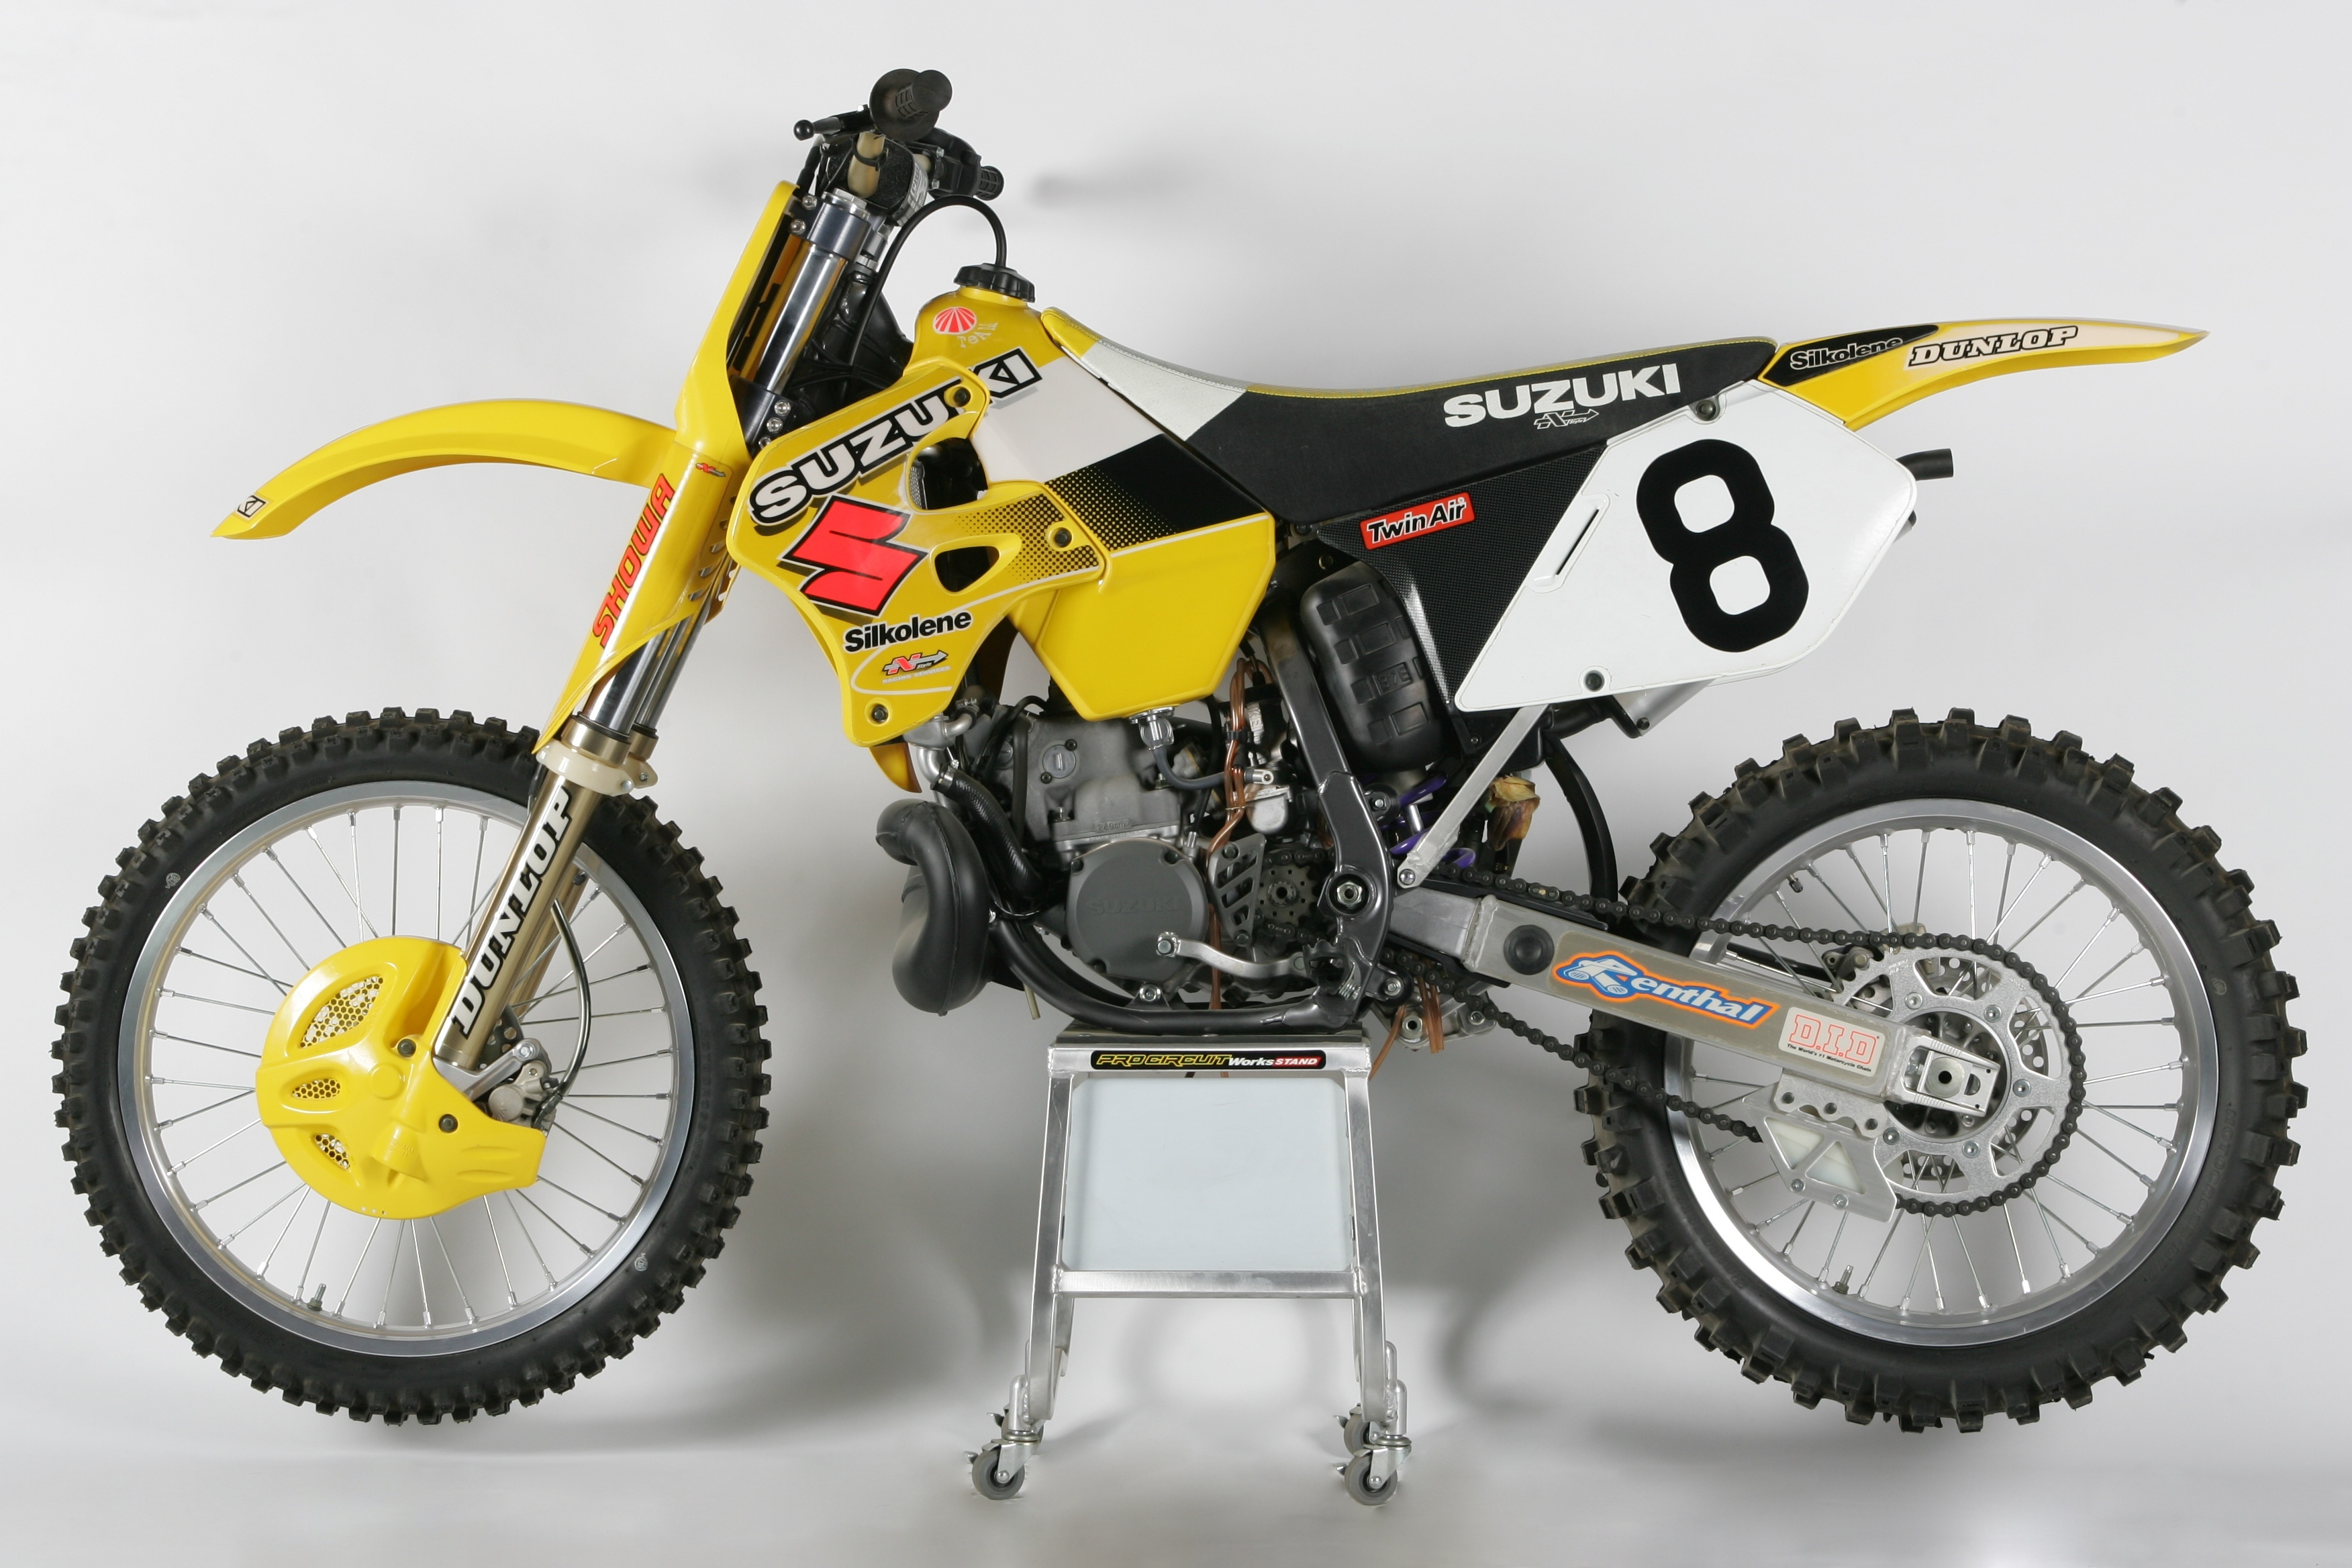 This week's Classic Steel is a look back at the 96 RM250